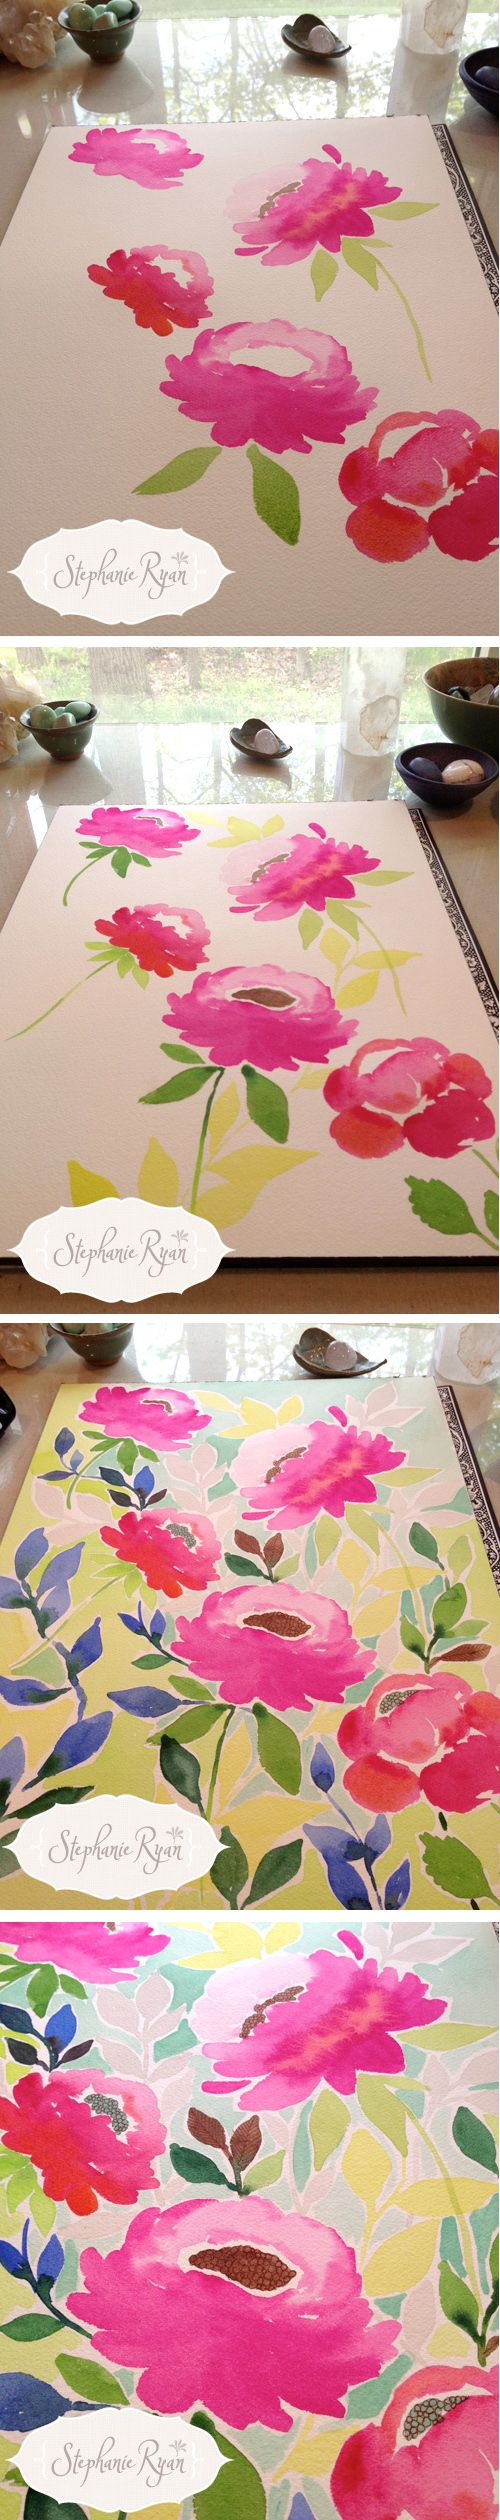 I like to take pictures of my art while I paint to share my process. Stephanie Ryan